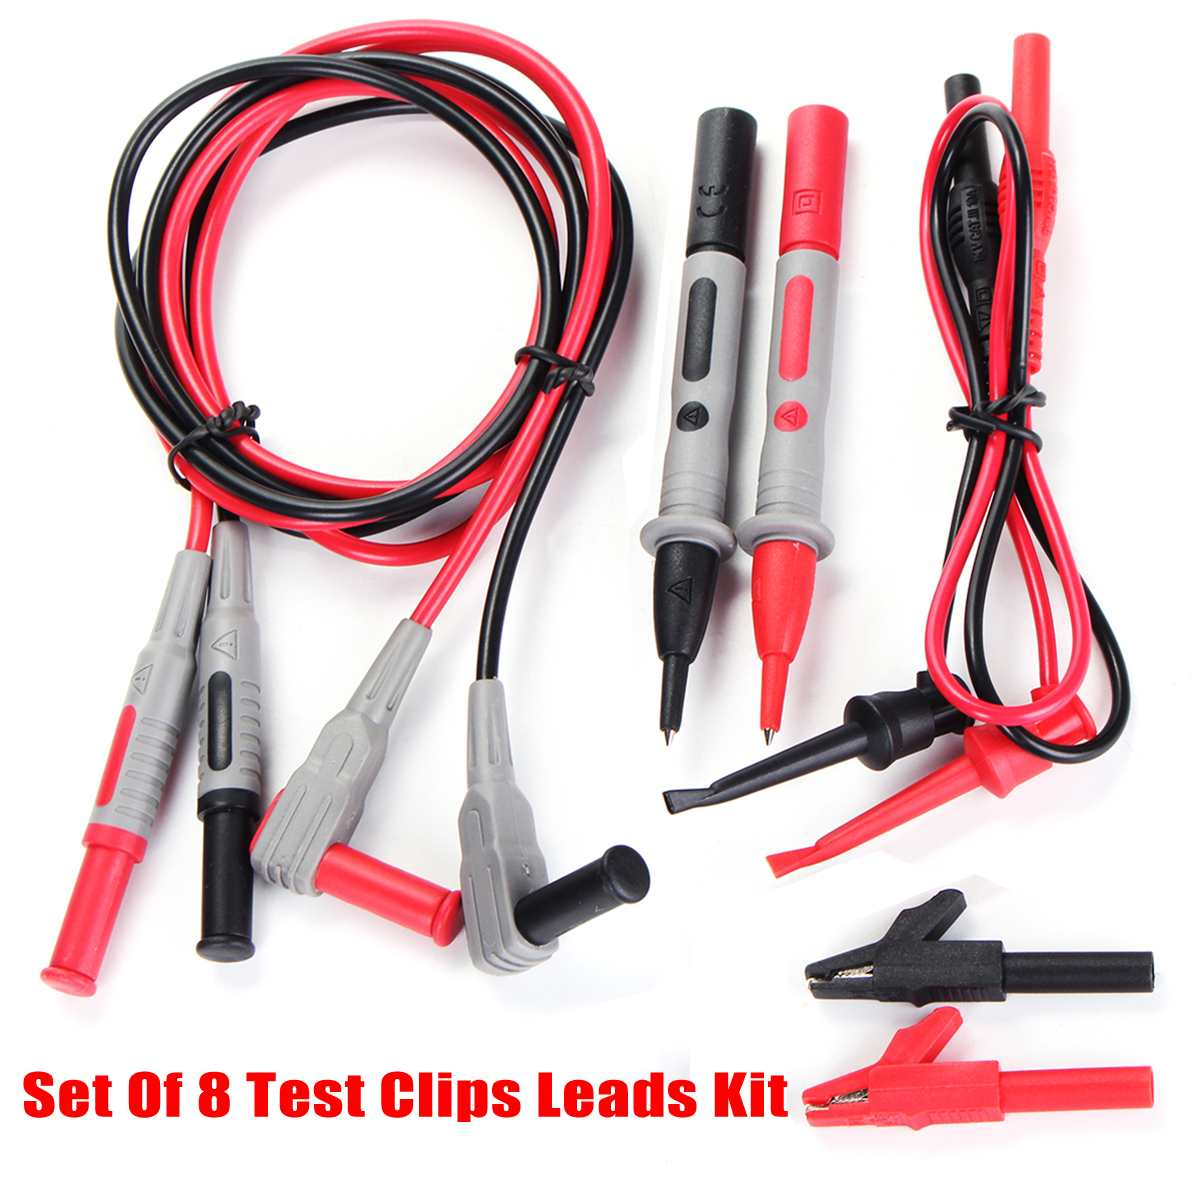 8Pcs/Set  Electronic Specialties Test Clips Leads Kit Banana Tester Probe Kit For Fluke Multimeter